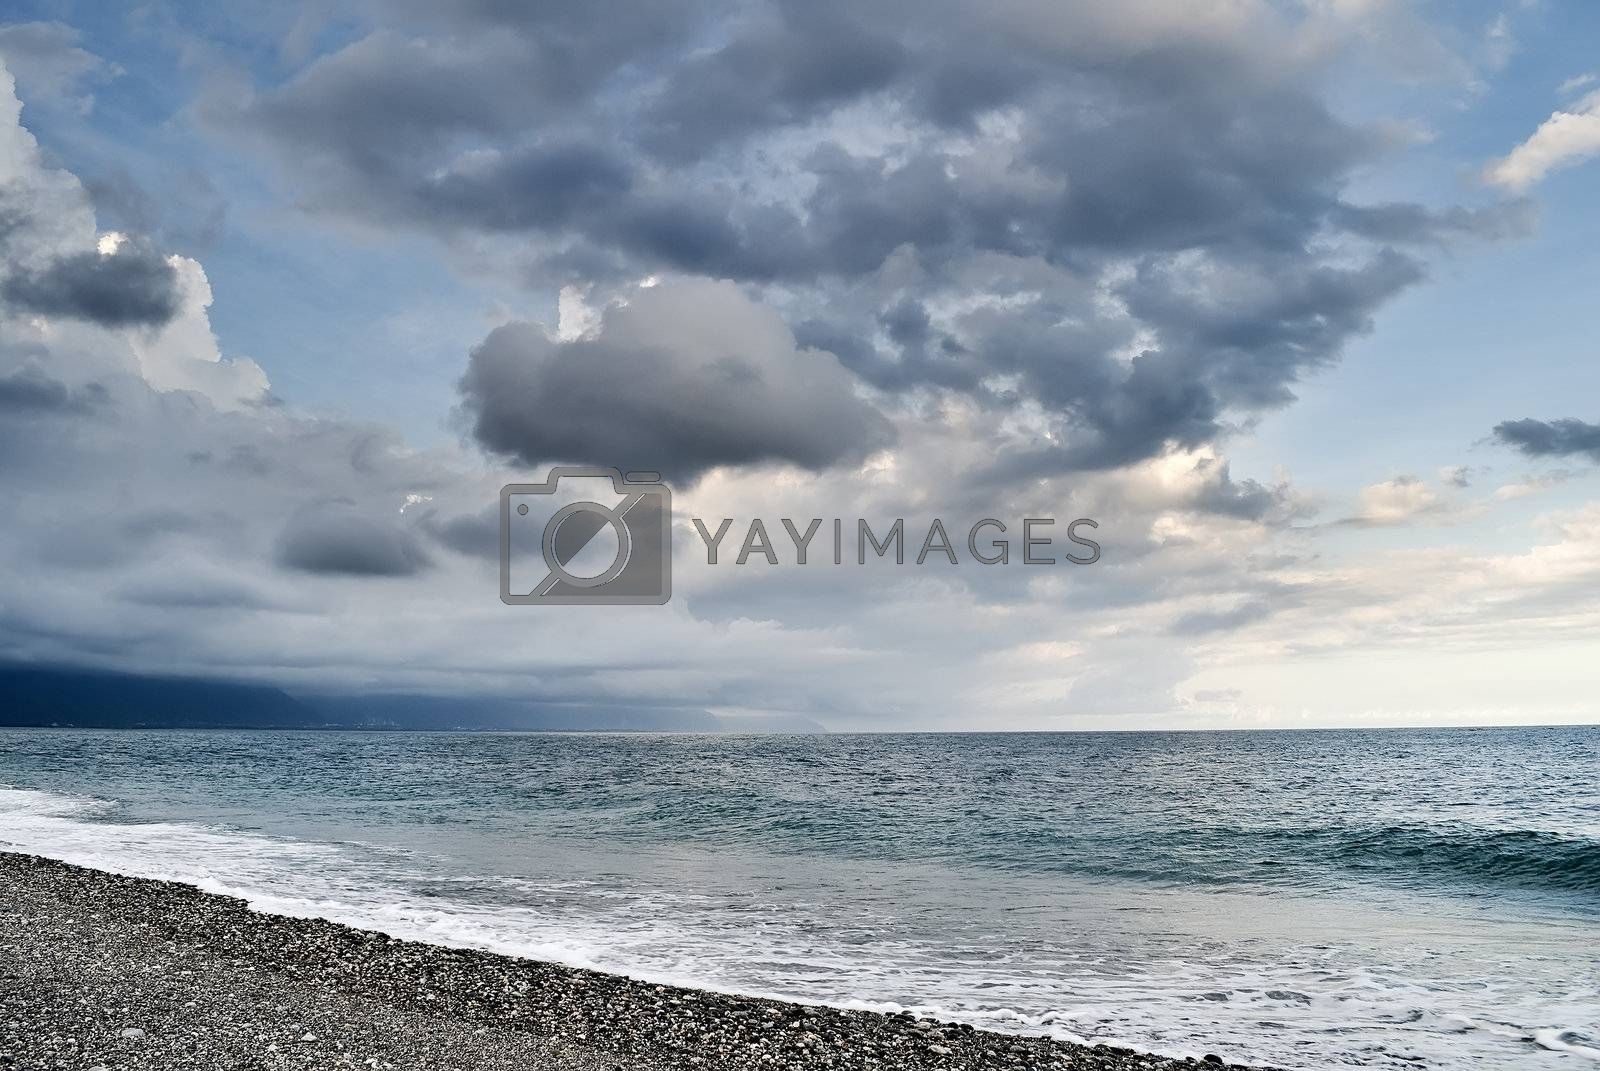 Bad weather seascape with cloudy sky and water wave.